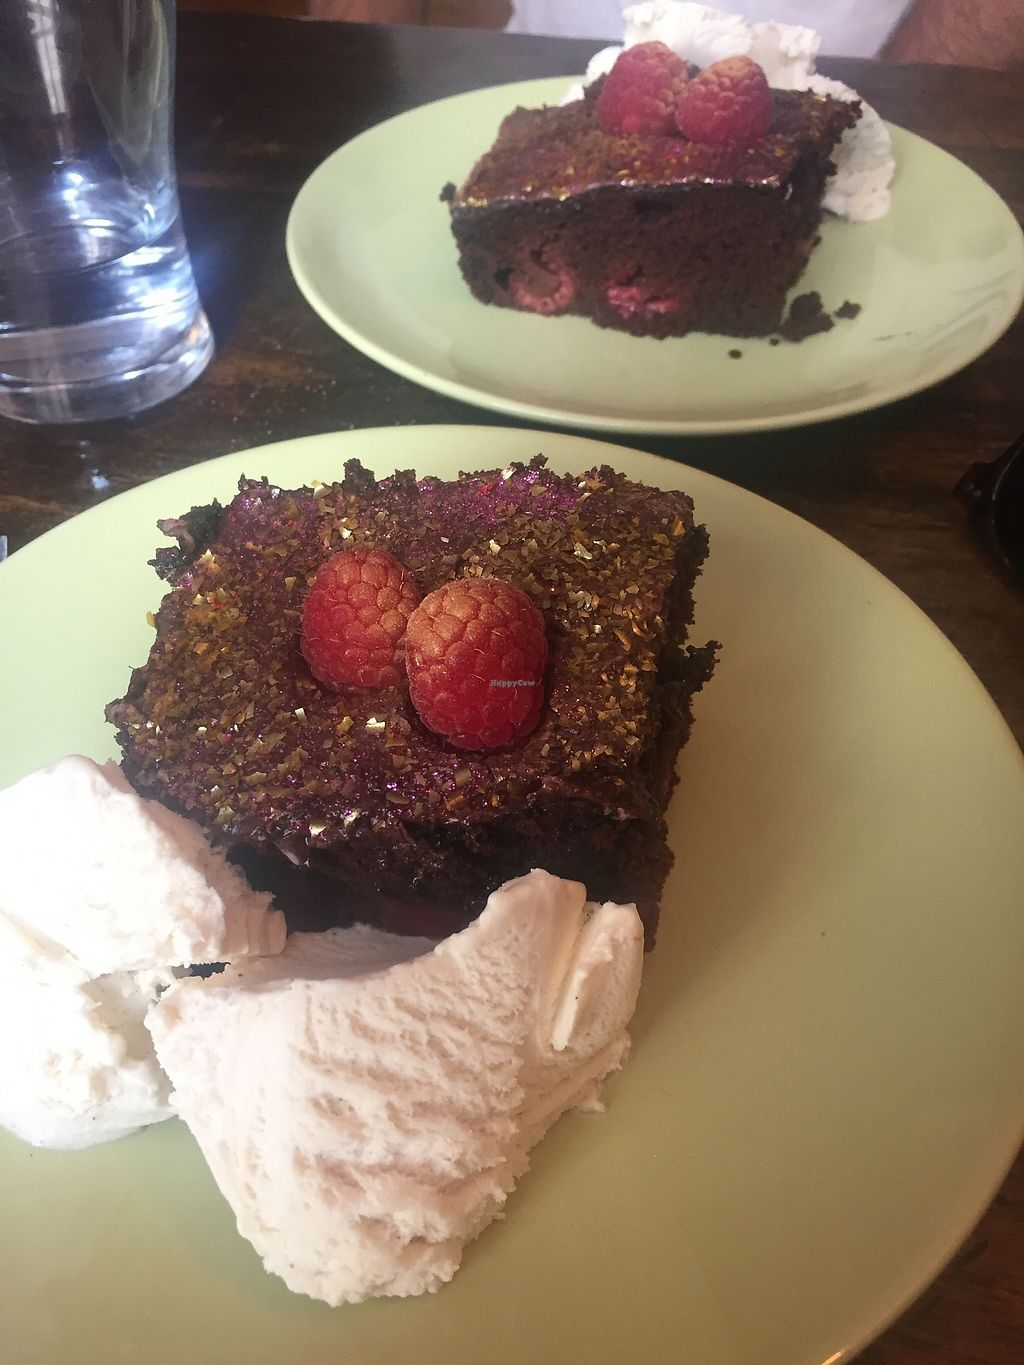 """Photo of Vegan Food Pimp - Pop-up  by <a href=""""/members/profile/alice28"""">alice28</a> <br/>Chocolate and raspberry cake <br/> March 1, 2018  - <a href='/contact/abuse/image/82726/365380'>Report</a>"""